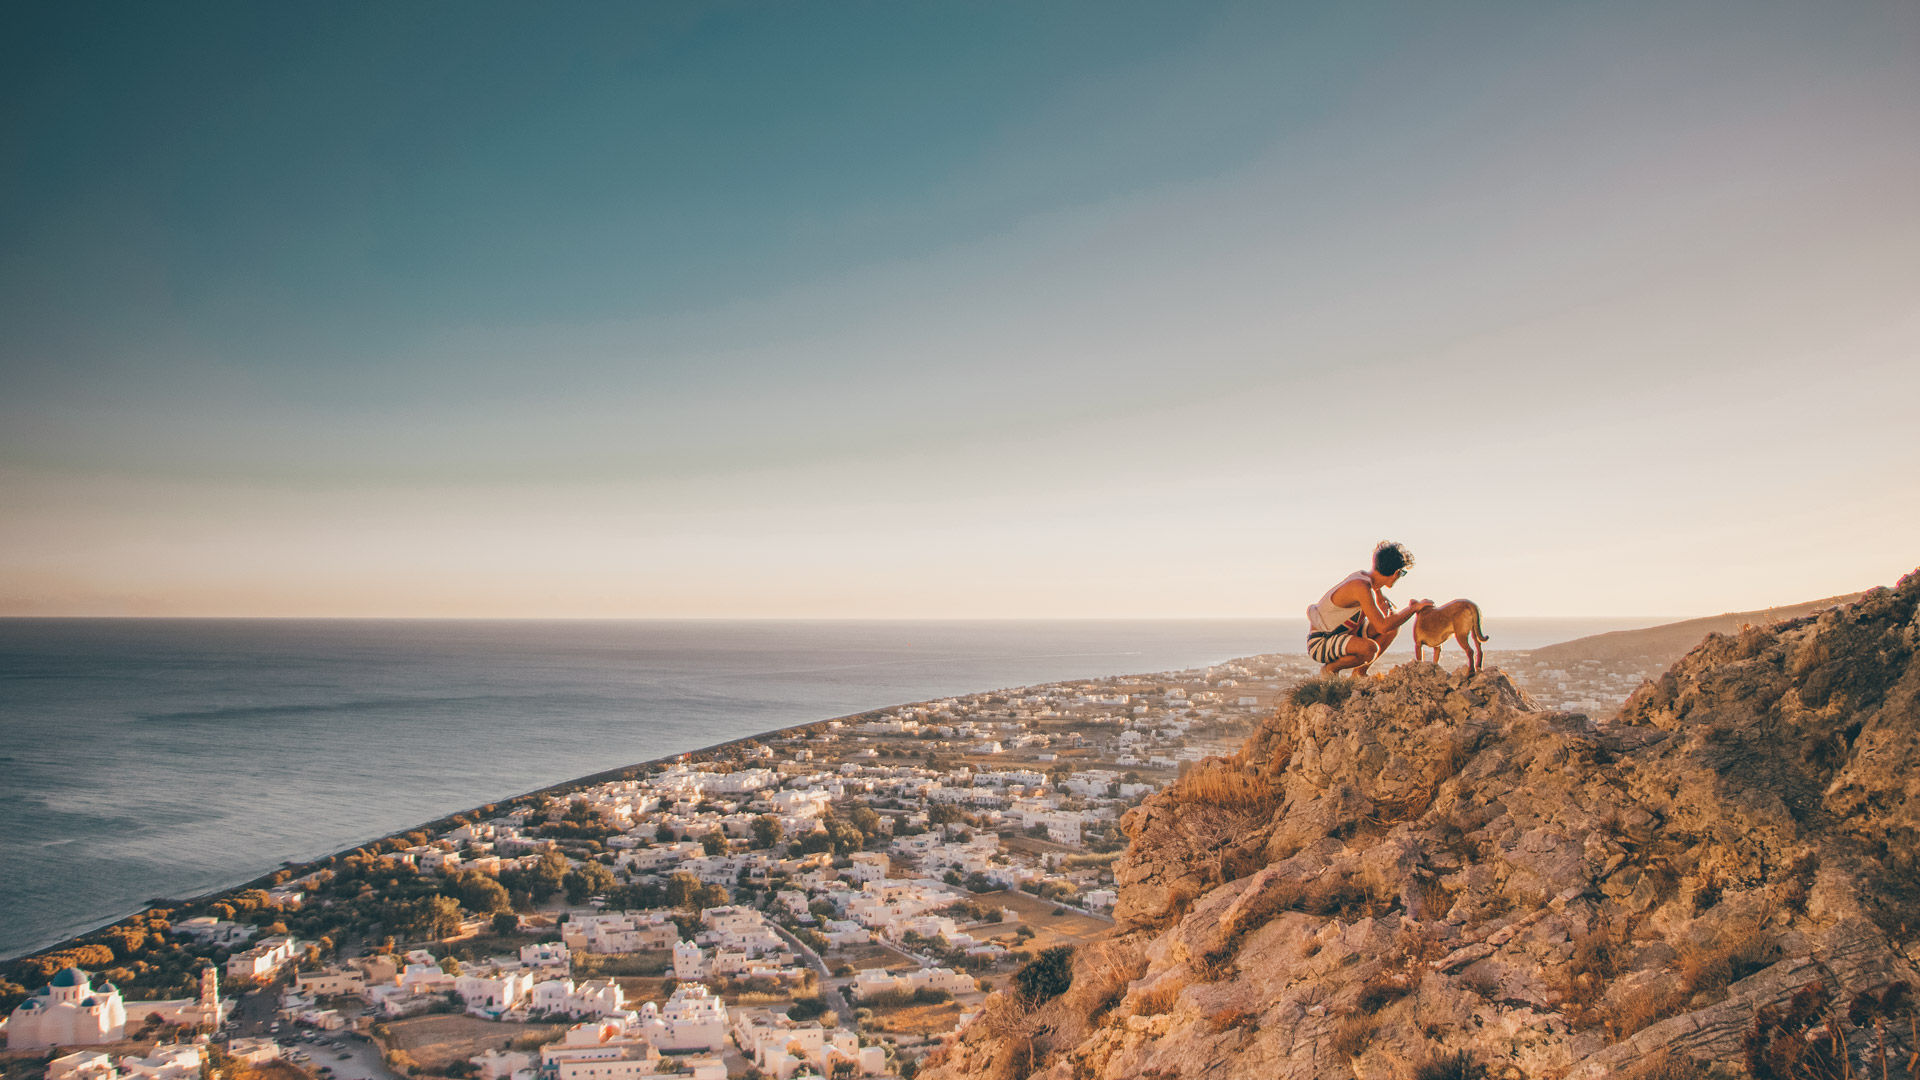 Despite Santorini's clifftop landscape, the walks aren't challenging